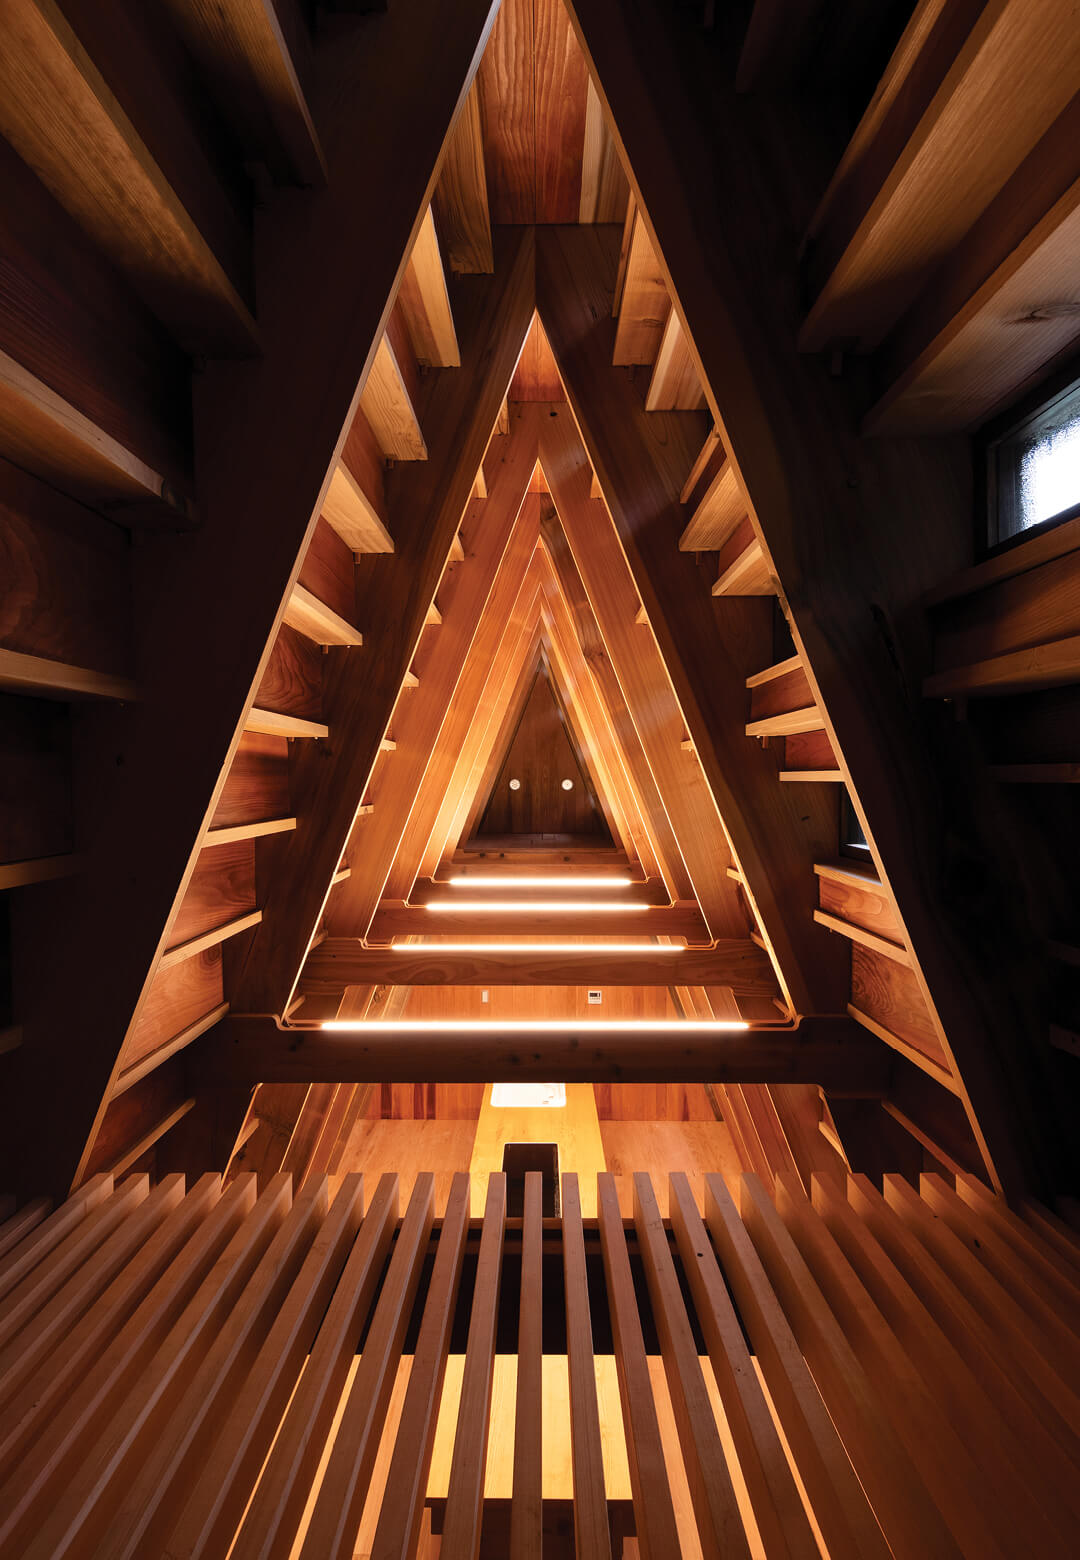 Inside the House for Marebito designed by Japanese architecture startup VUILD | House for Marebito designed by VUILD | STIRworld